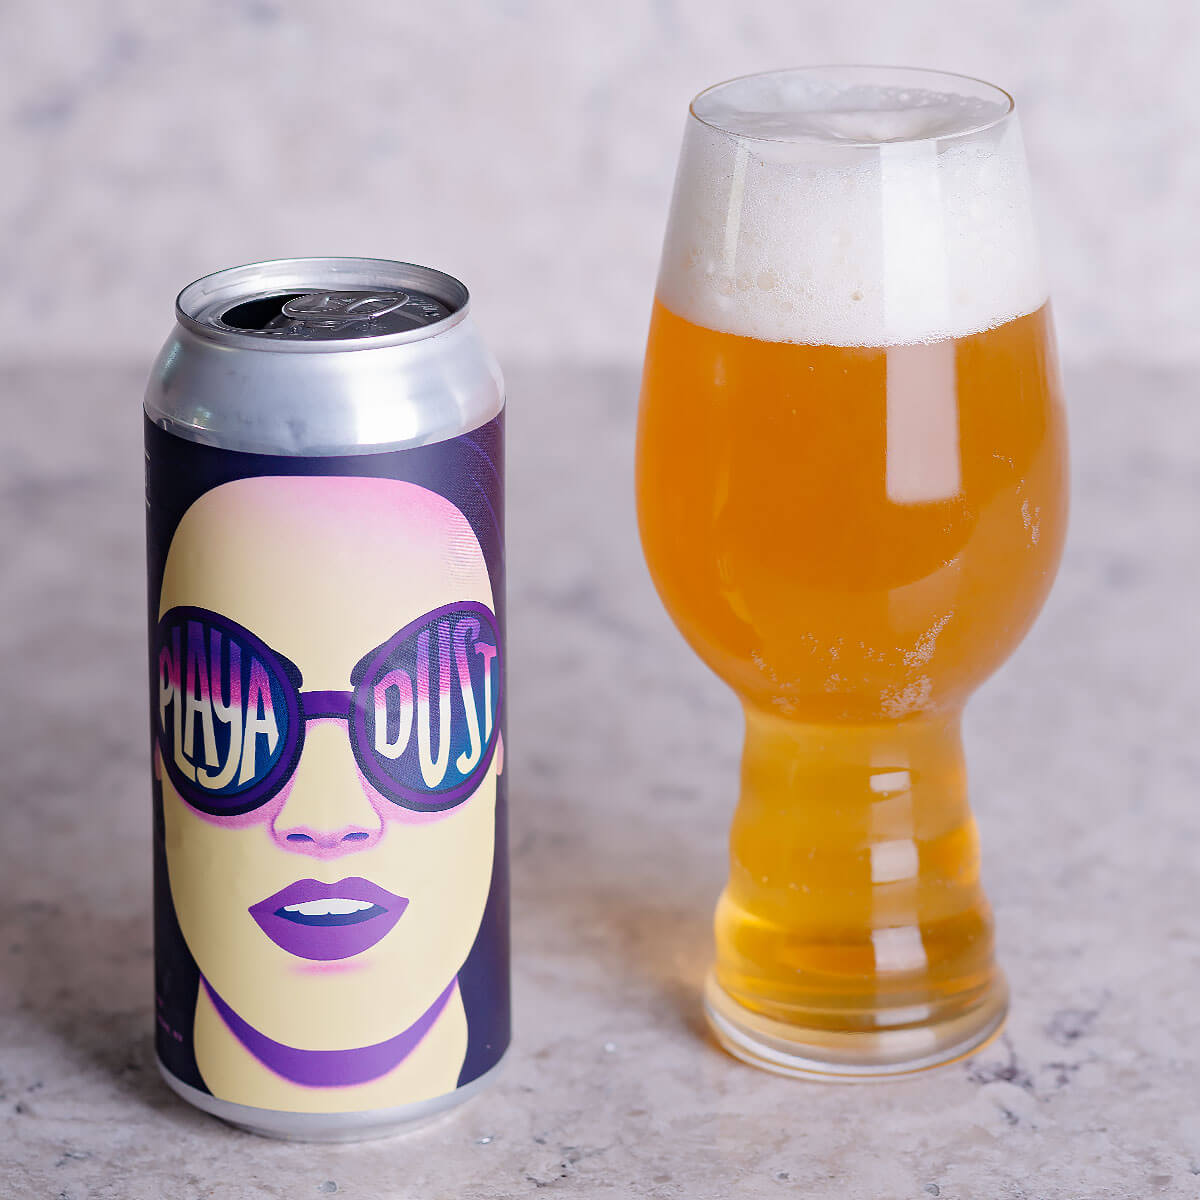 Playa Dust is a New England-style IPA by IMBĪB Custom Brews that blends hoppy citrus and tropical fruit with bready malt.